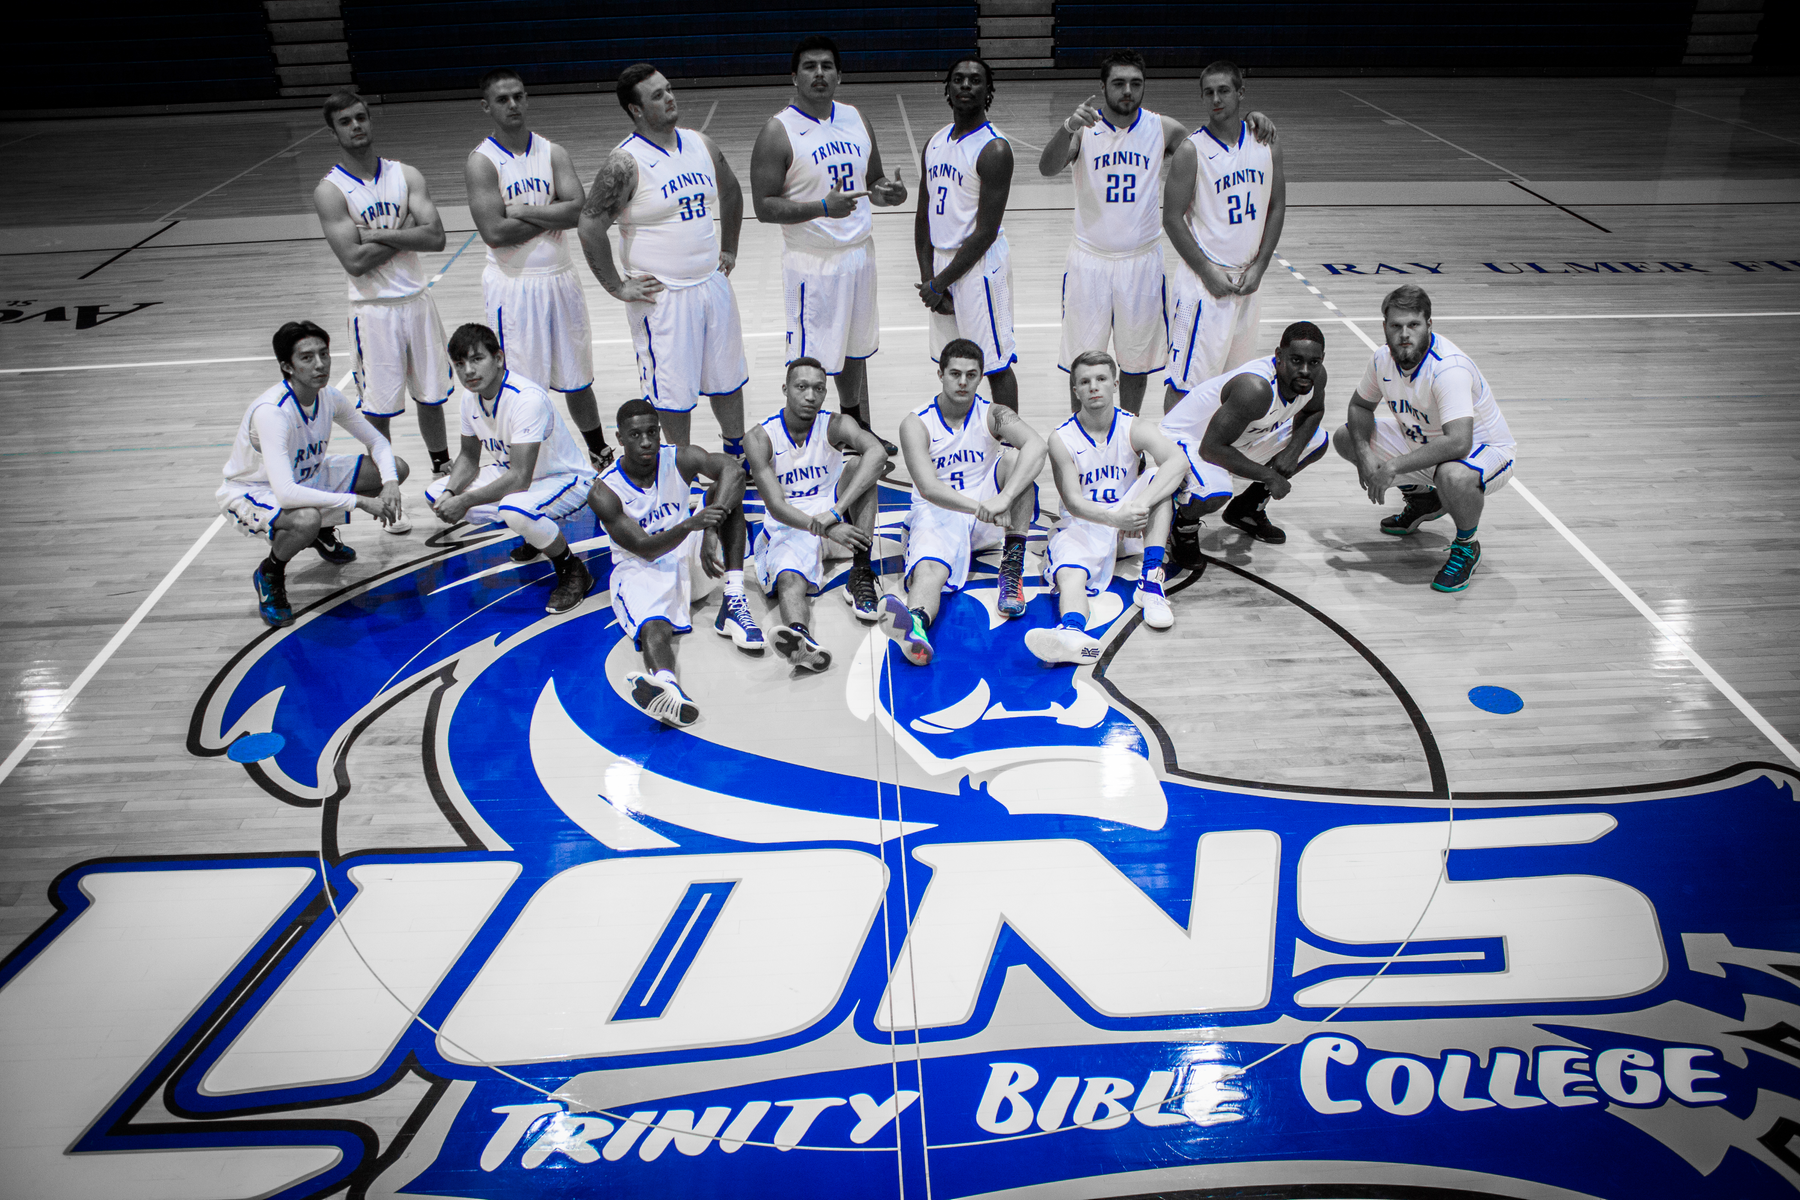 Lions MBB Come Up Short in ACCA National Championship Game